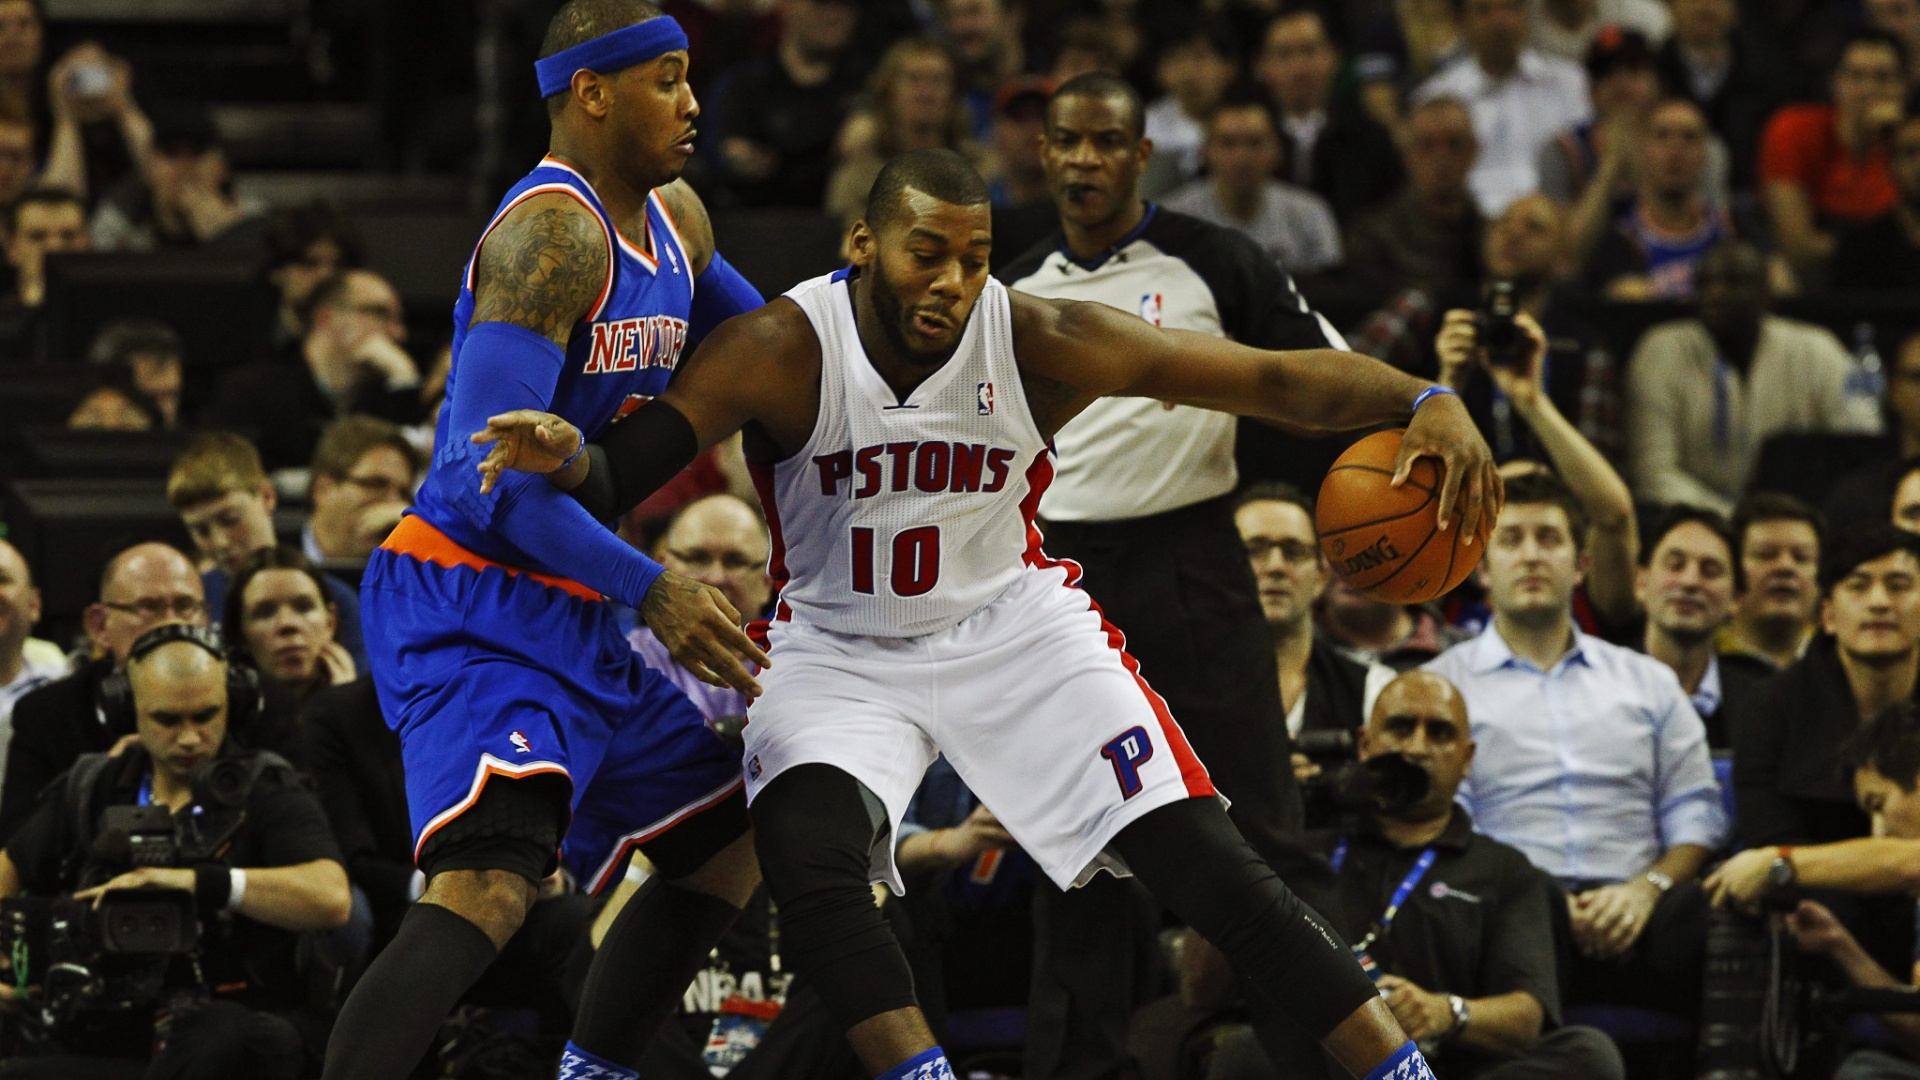 17.jan.2013 - Carmelo Anthony, do New York Knicks, tenta conter o avanço de Greg Monroe, do Detroit Pistons, em jogo disputado na Arena O2, em Londres